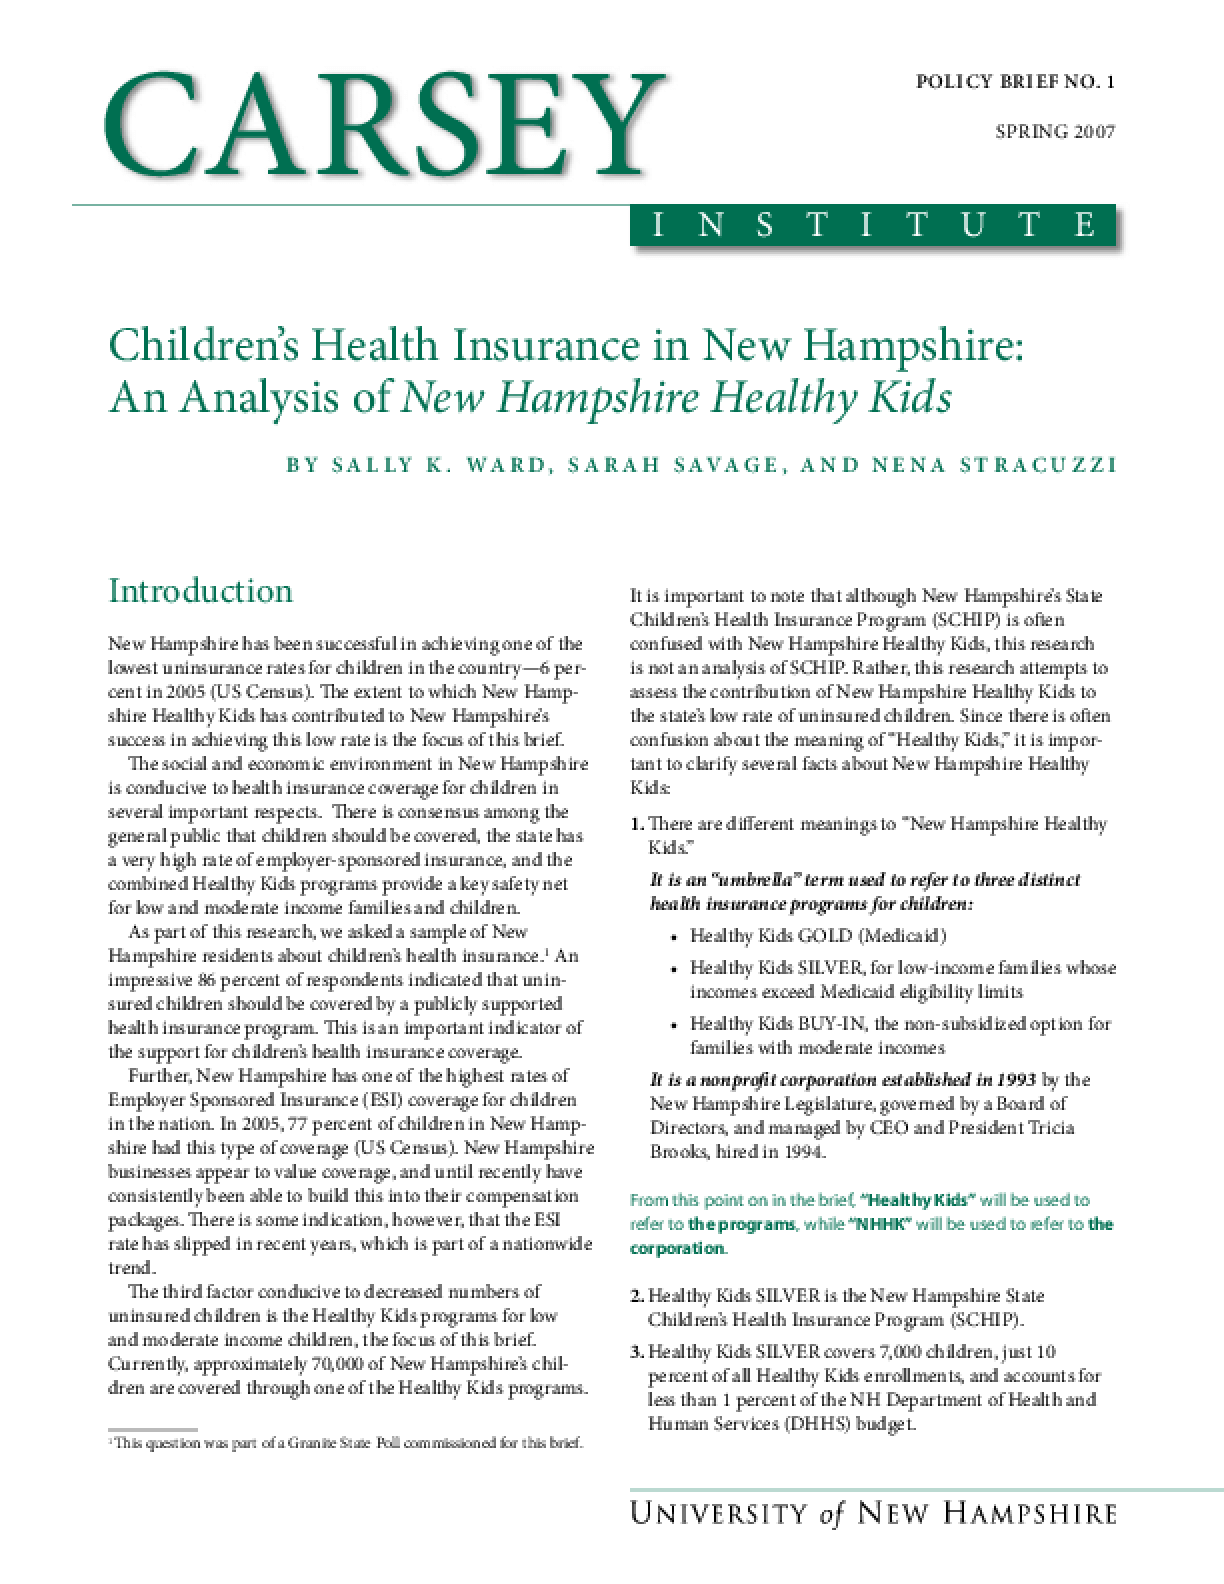 Children's Health Insurance in New Hampshire: An Analysis of New Hampshire Healthy Kids